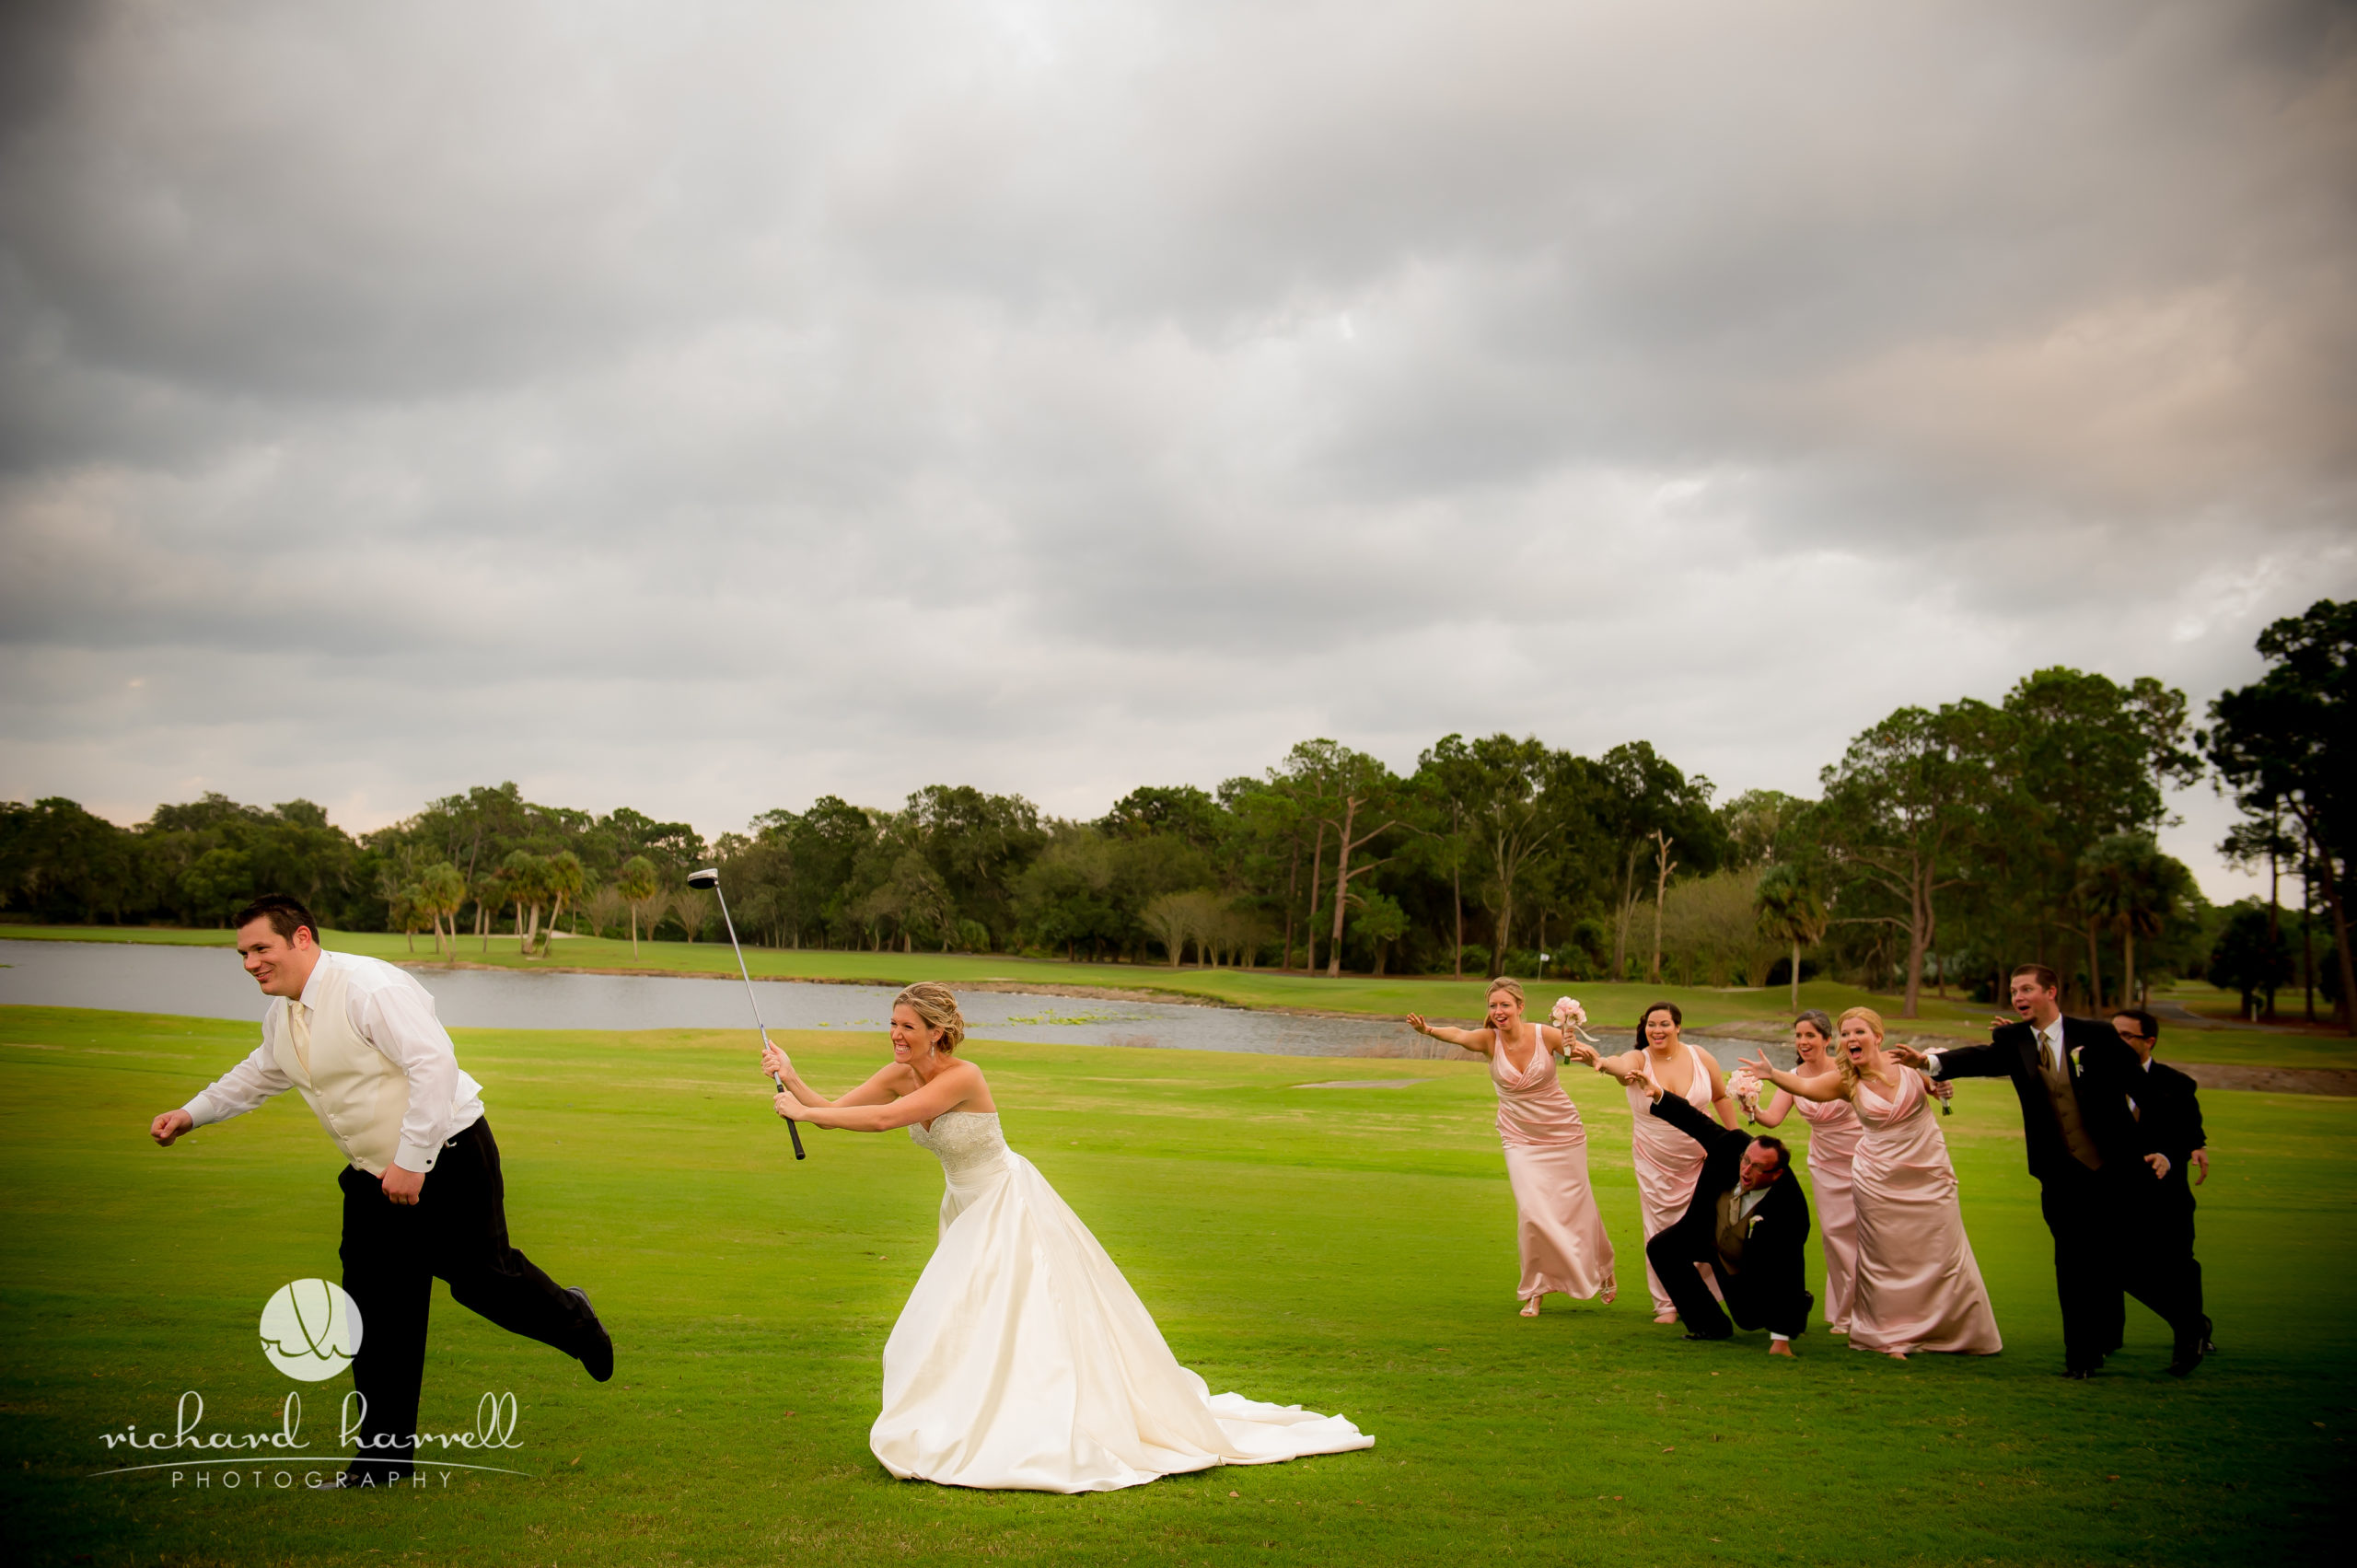 Bride chasing groom with golf club on golf course